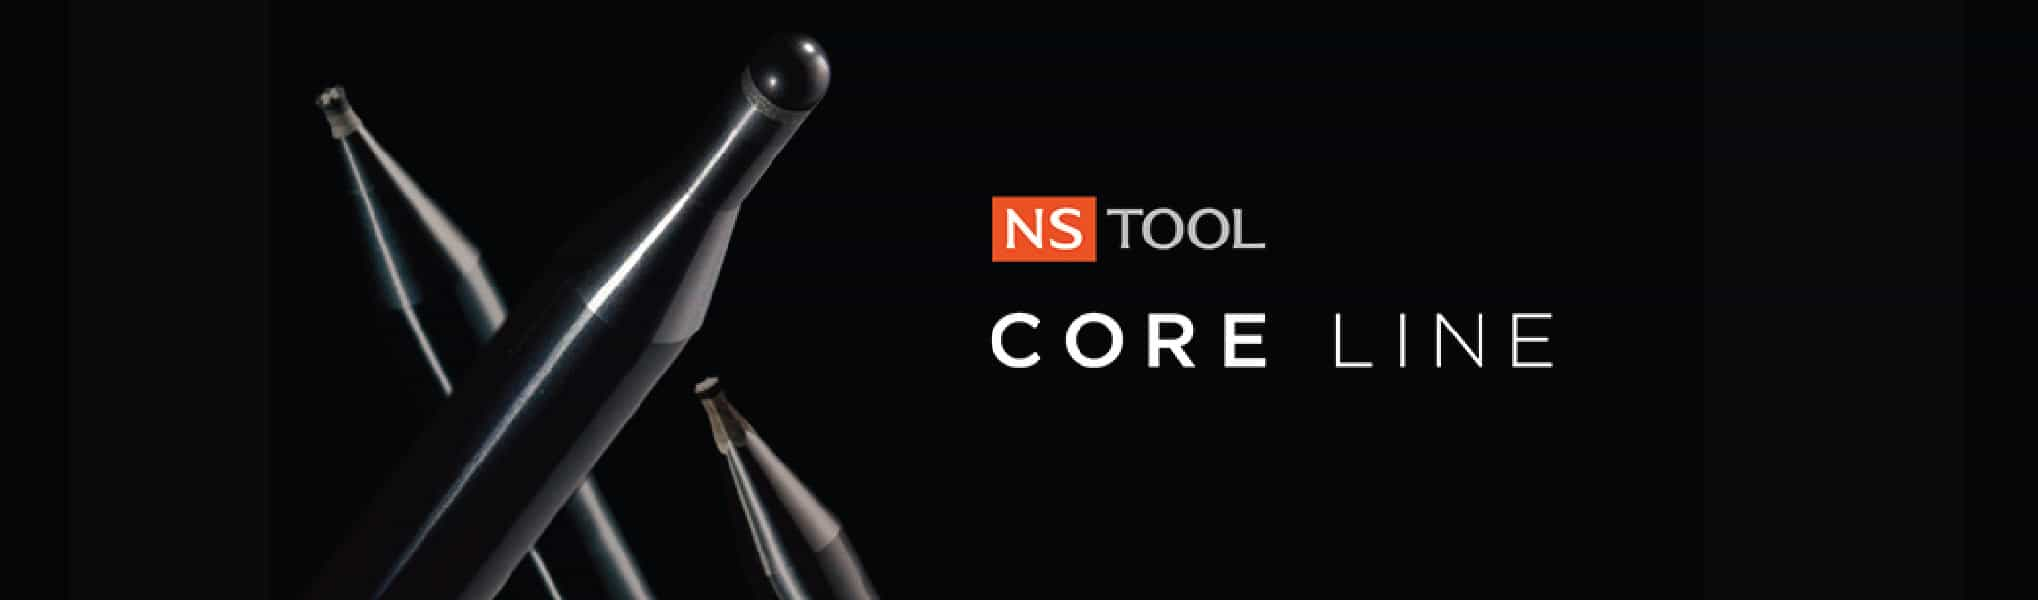 NS TOOL-04